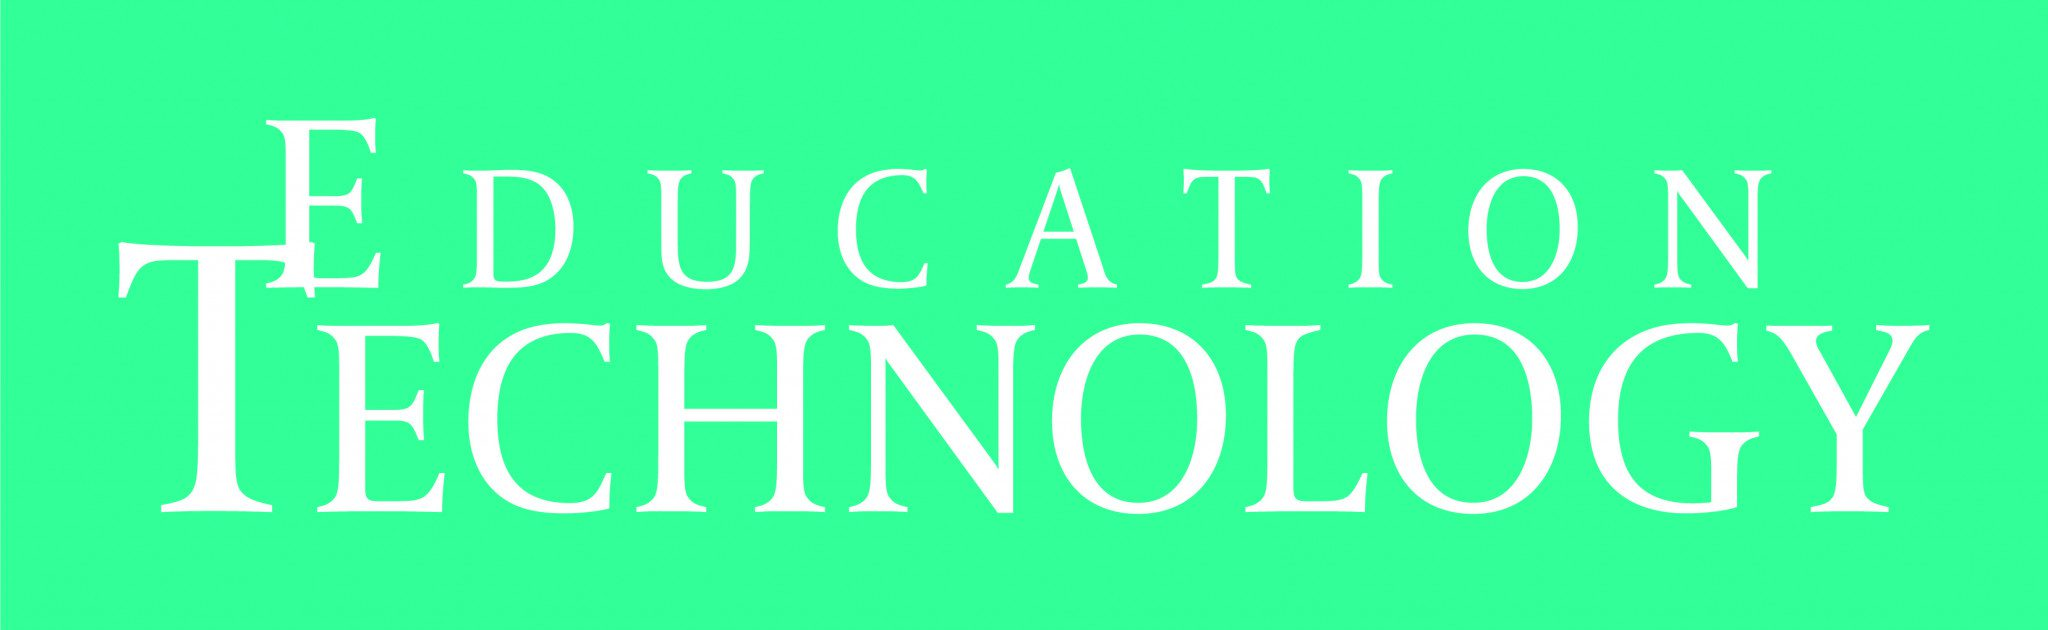 Green background for Education Technoogy